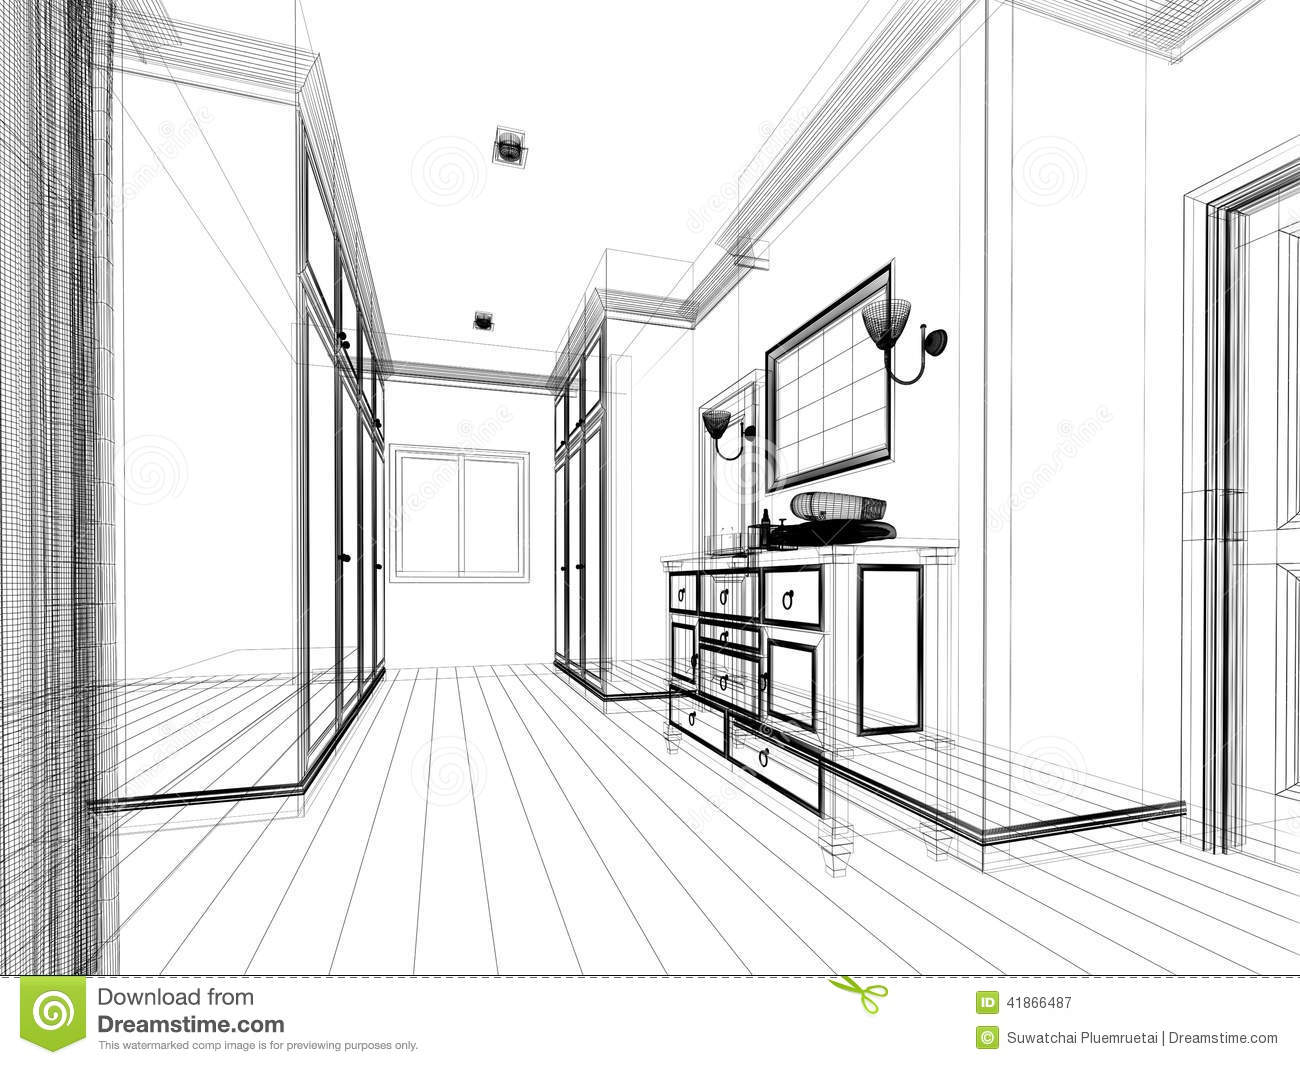 Abstract Sketch Design Of Interior Walk-in Closet Stock Illustration ...